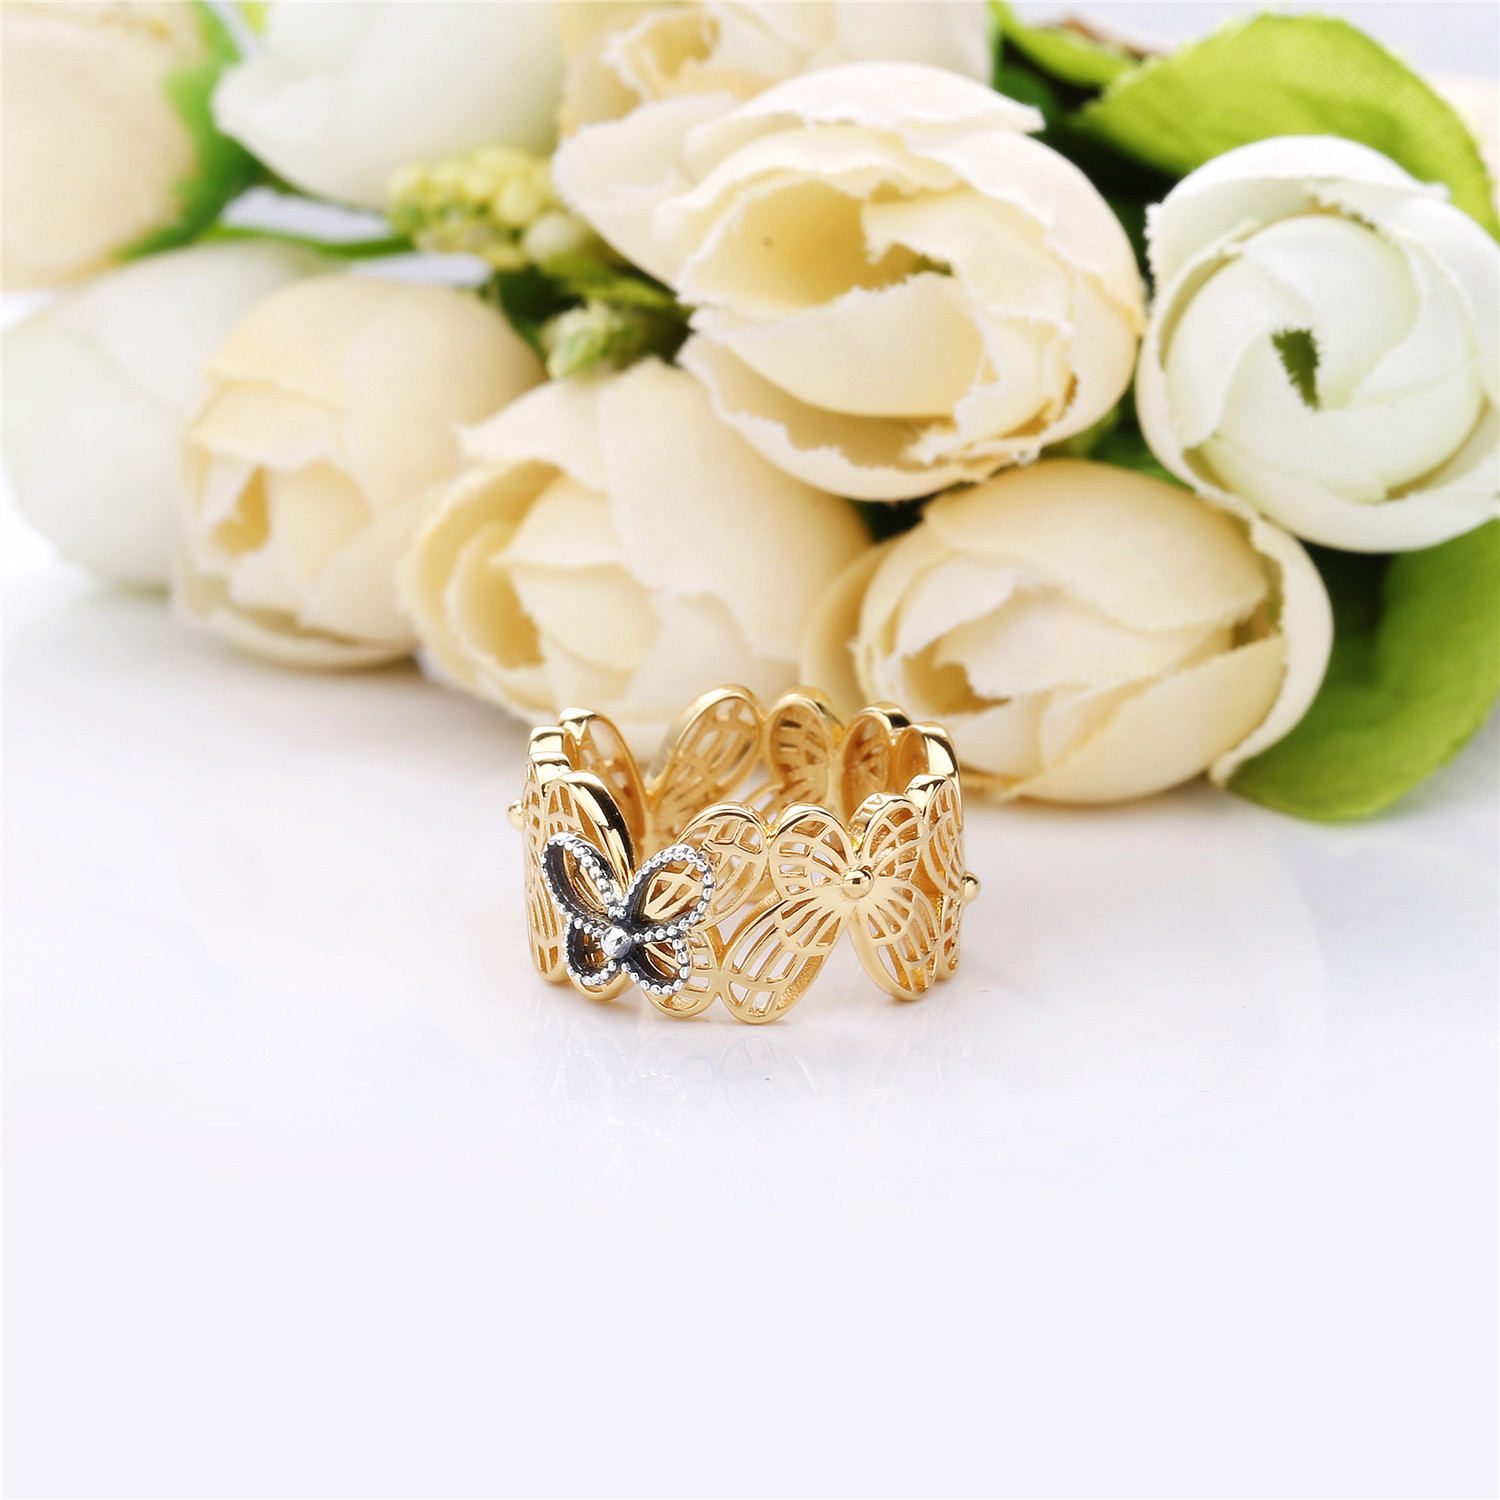 Openwork Butterflies Ring, Pandora Shine™ 167947 For Latest Openwork Butterfly Rings (Gallery 15 of 25)